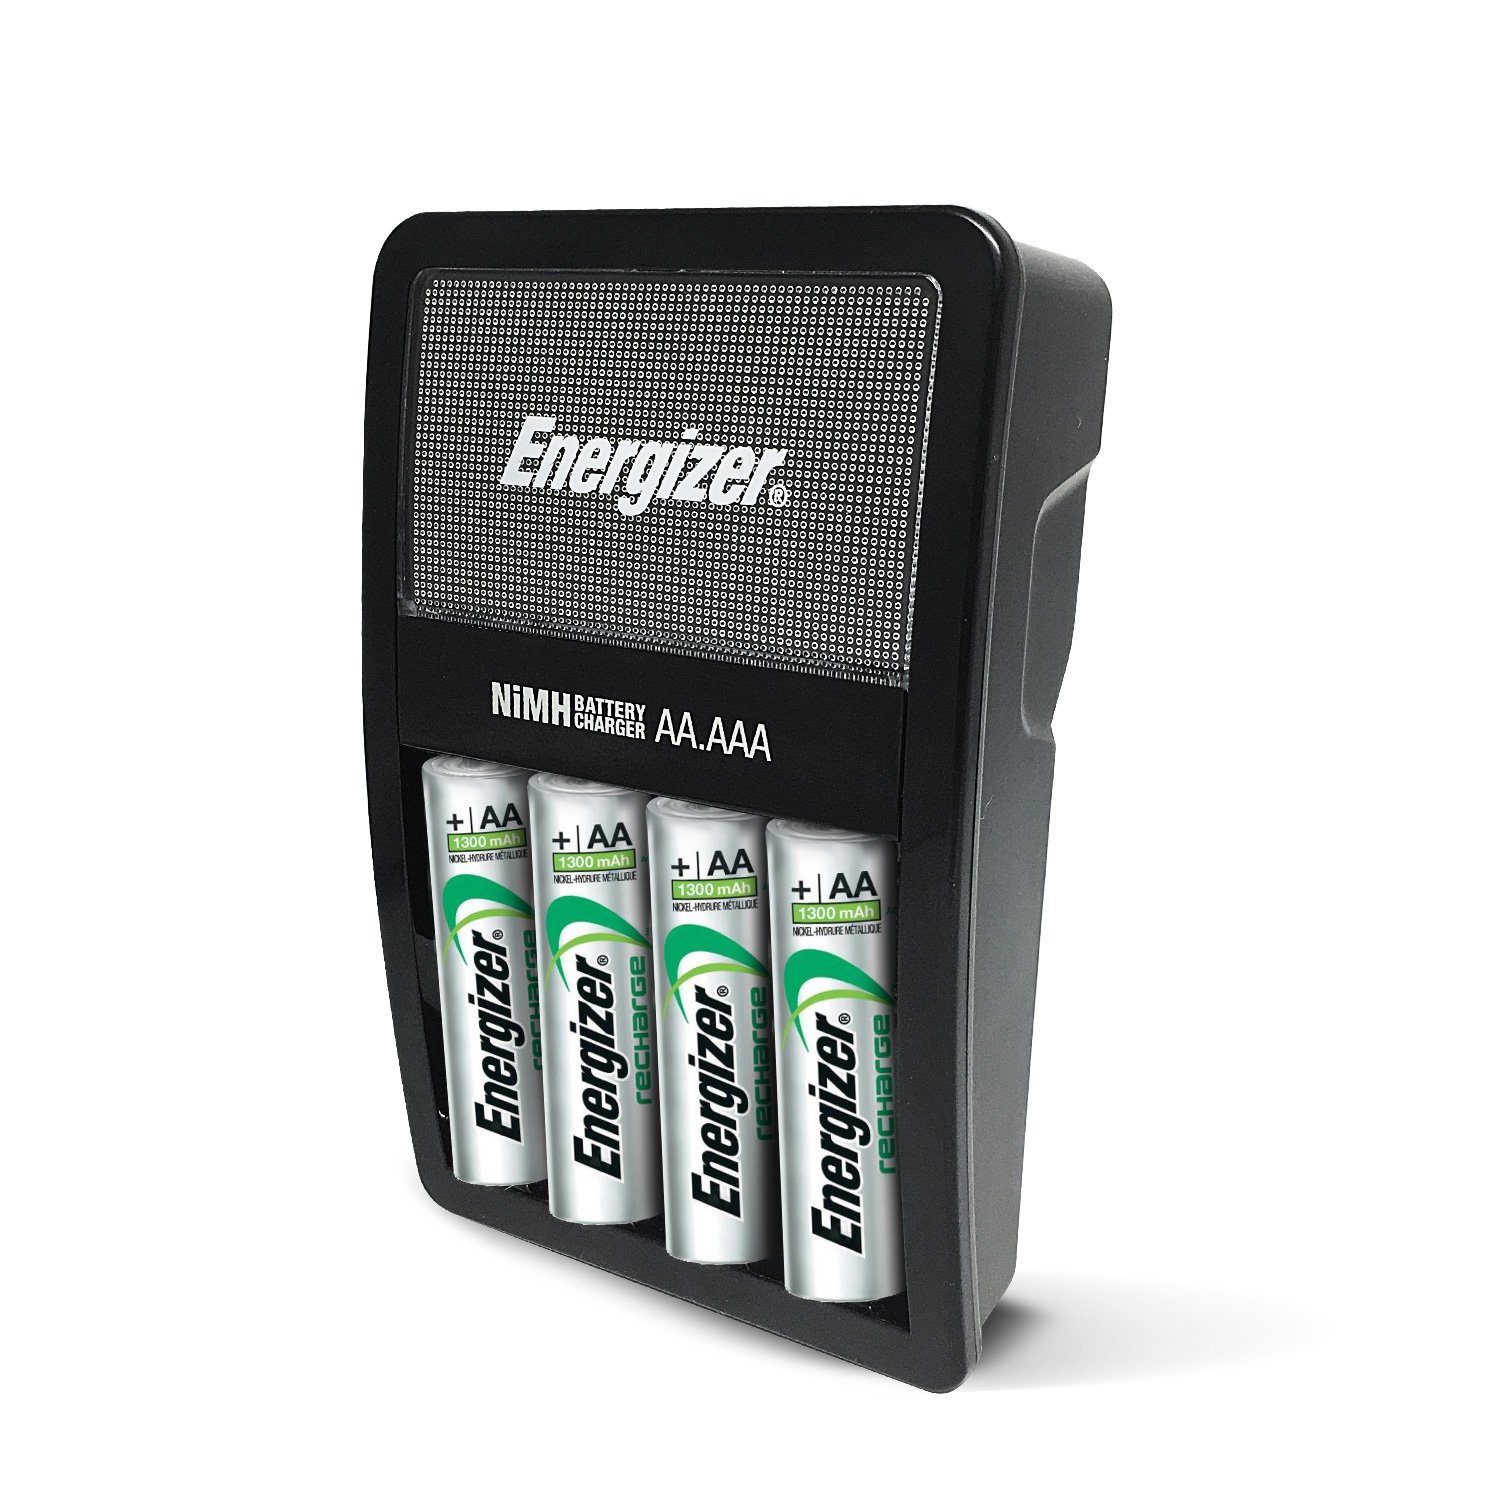 Eveready nimh battery charger instructions